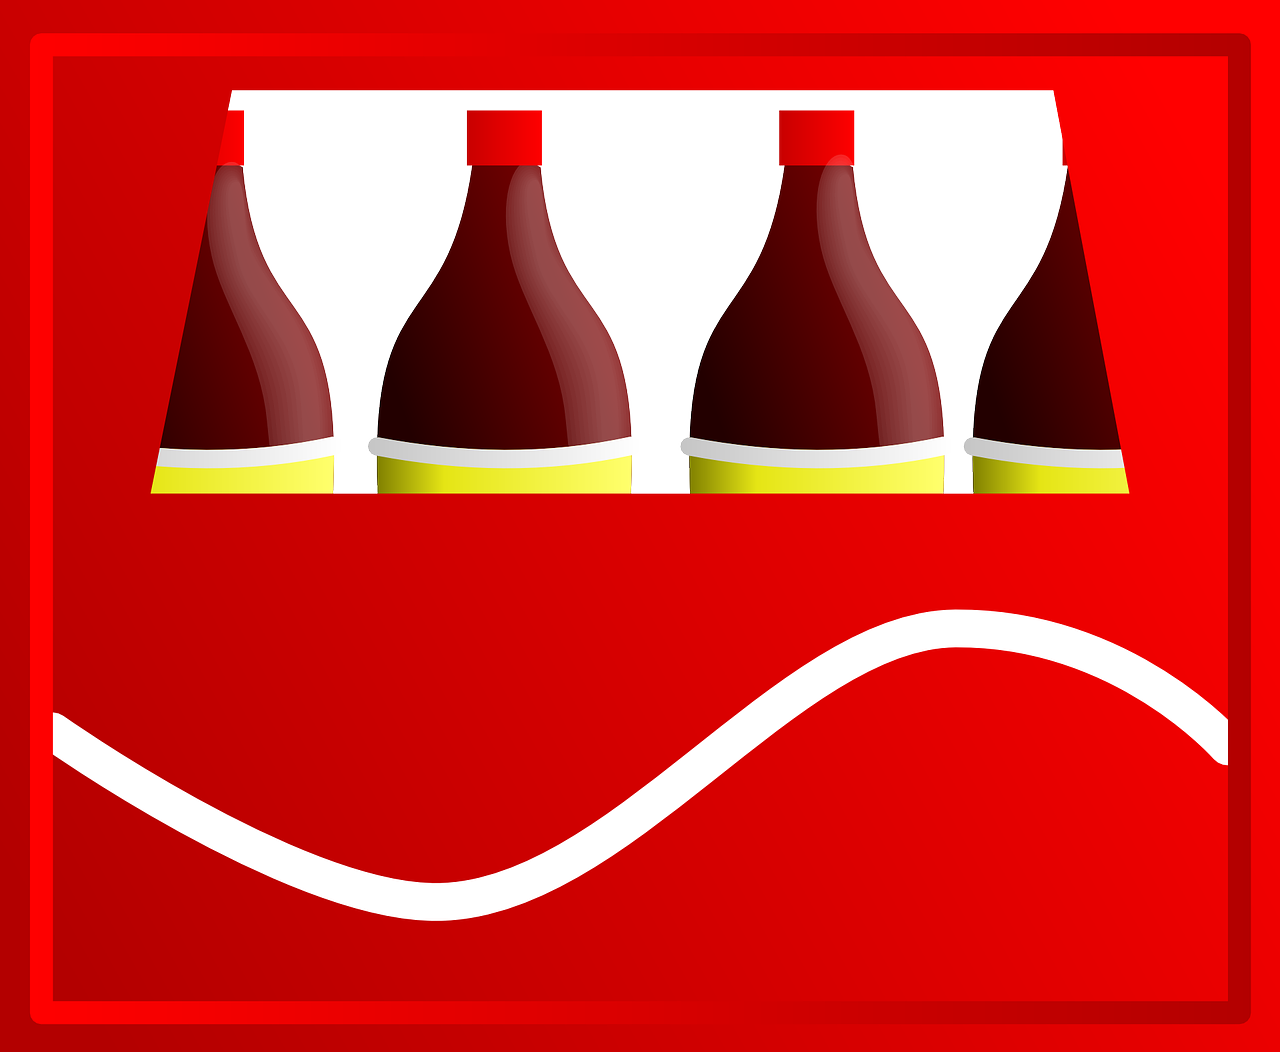 Drink clipart soda bottle In Crate Soda Free to